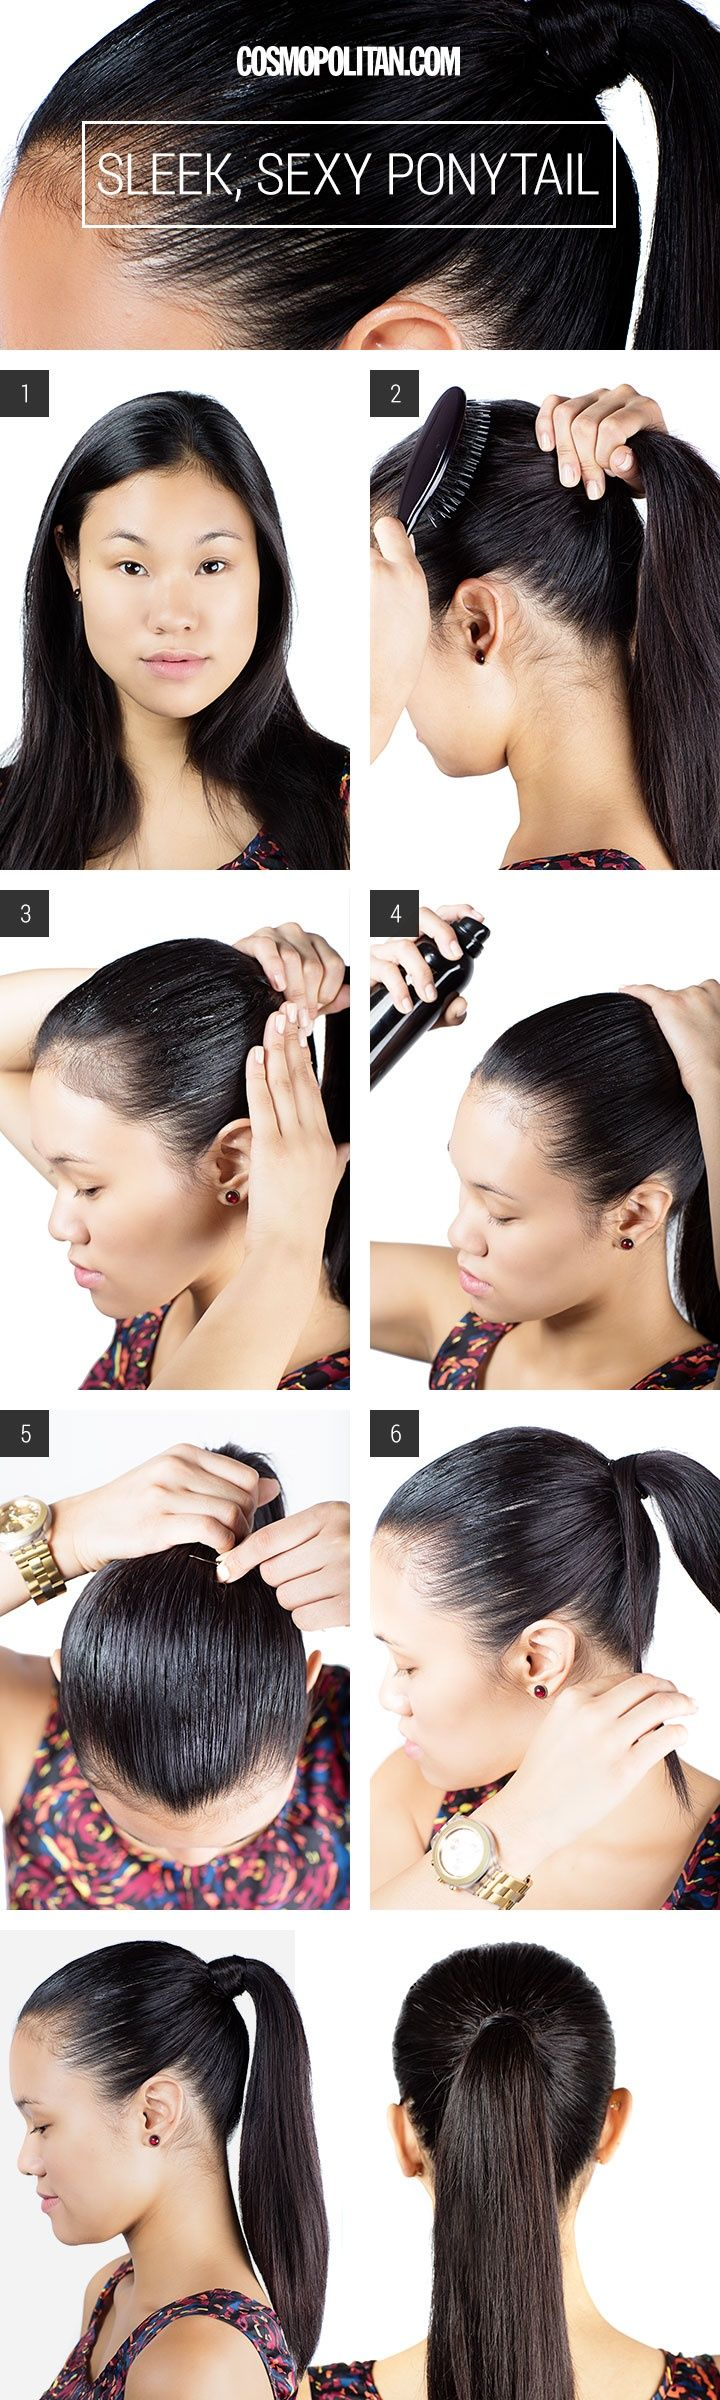 Sleek Ponytail Hair How To - Slicked Back Ponytail Look